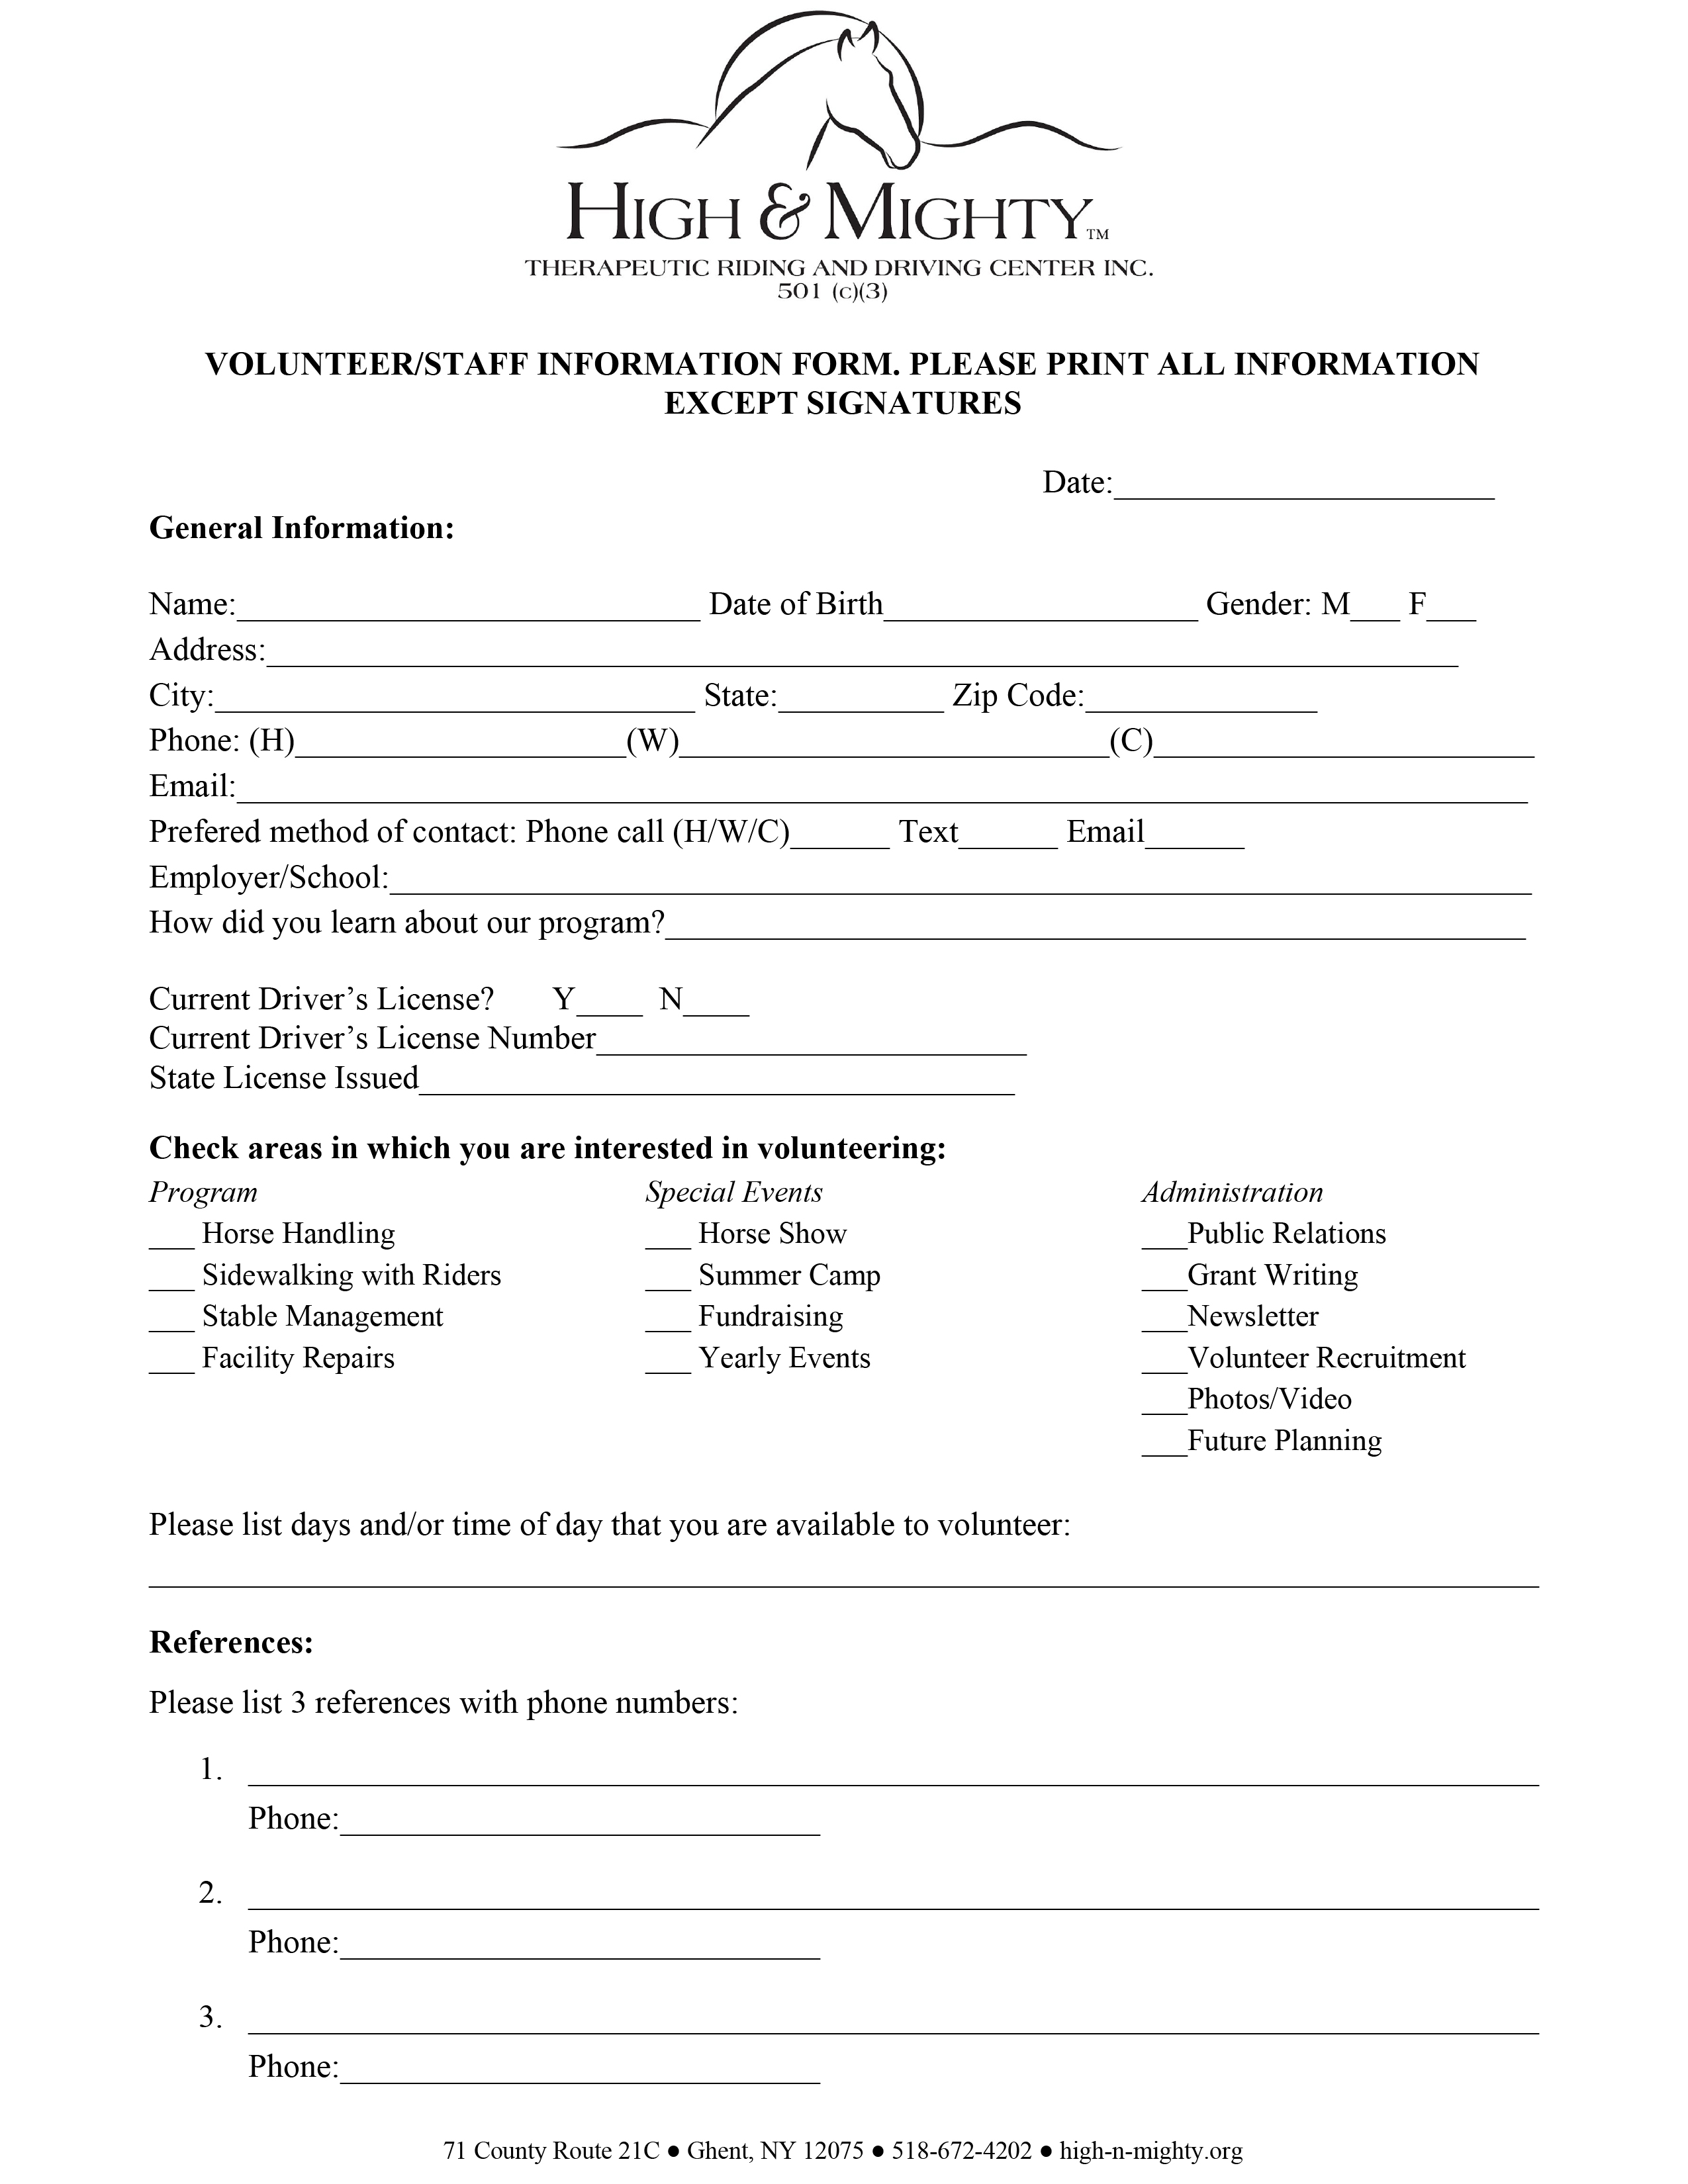 volunteerstaff application form